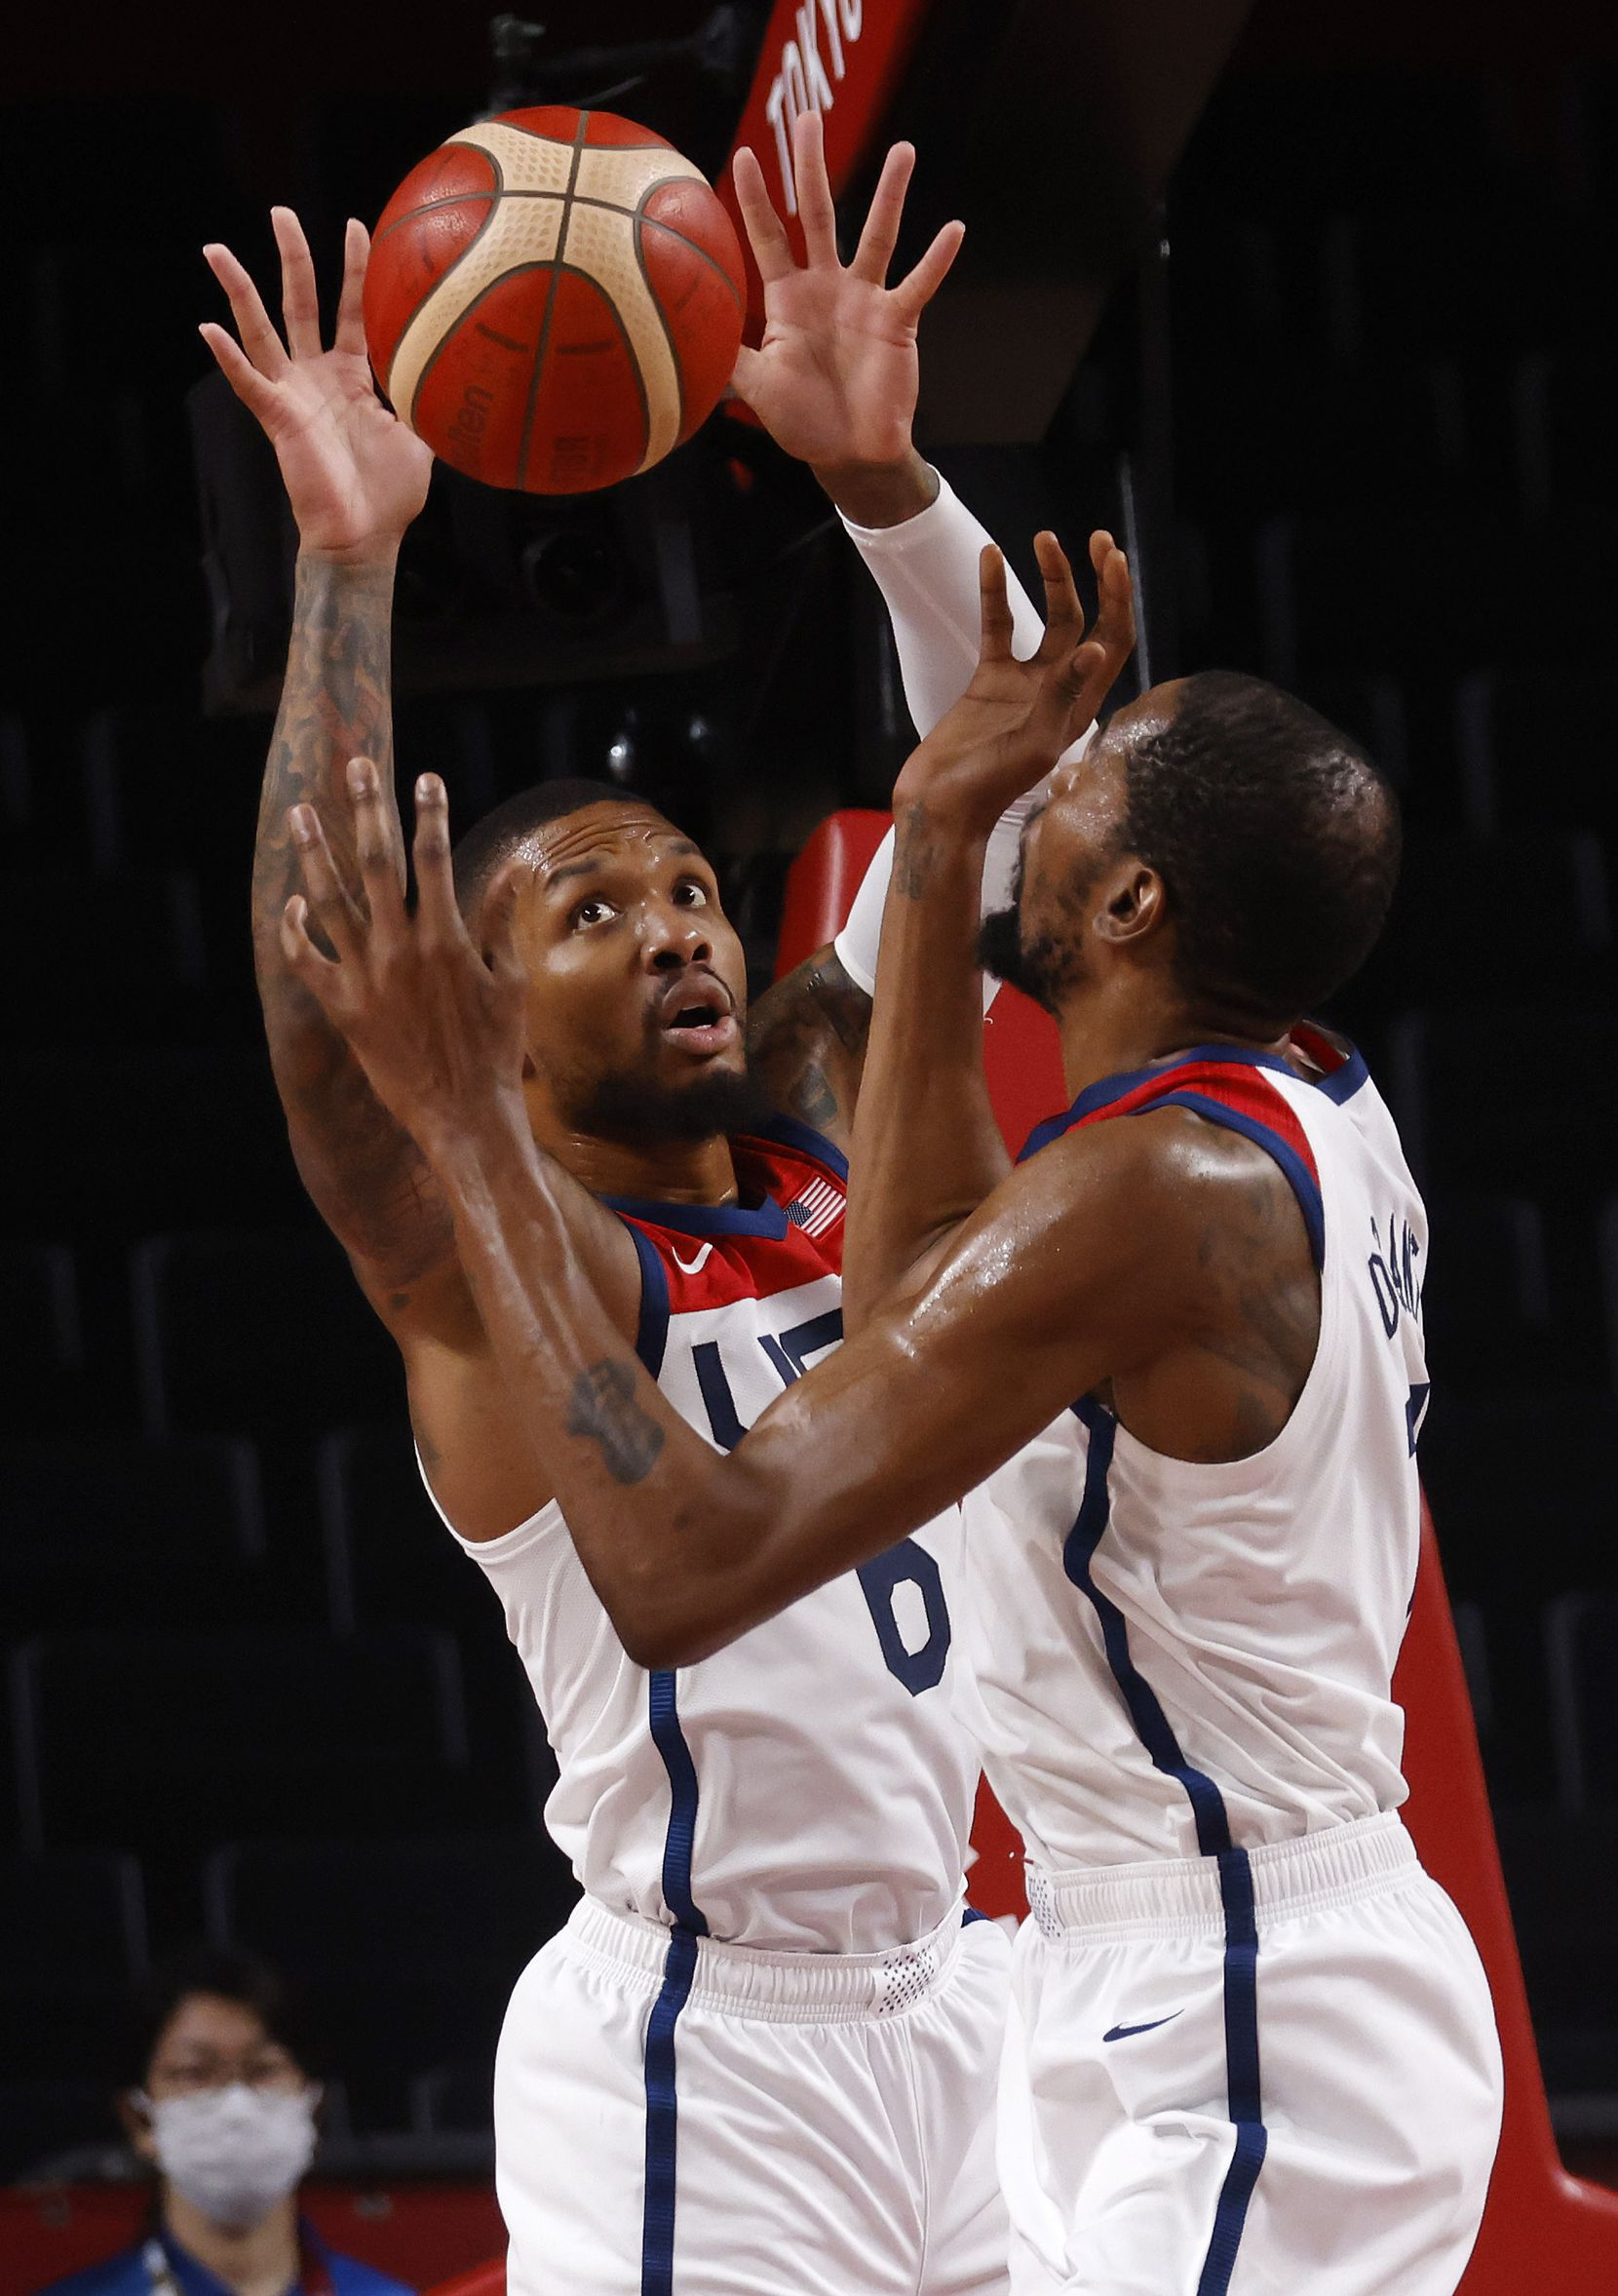 USA's Kevin Durant (7) and Damian Lillard (6) go up for a rebound in a game against Australia during the second half of a men's basketball semifinal at the postponed 2020 Tokyo Olympics at Saitama Super Arena, on Thursday, August 5, 2021, in Saitama, Japan. USA defeated Australia 97-78 to advance to the gold medal game. (Vernon Bryant/The Dallas Morning News)